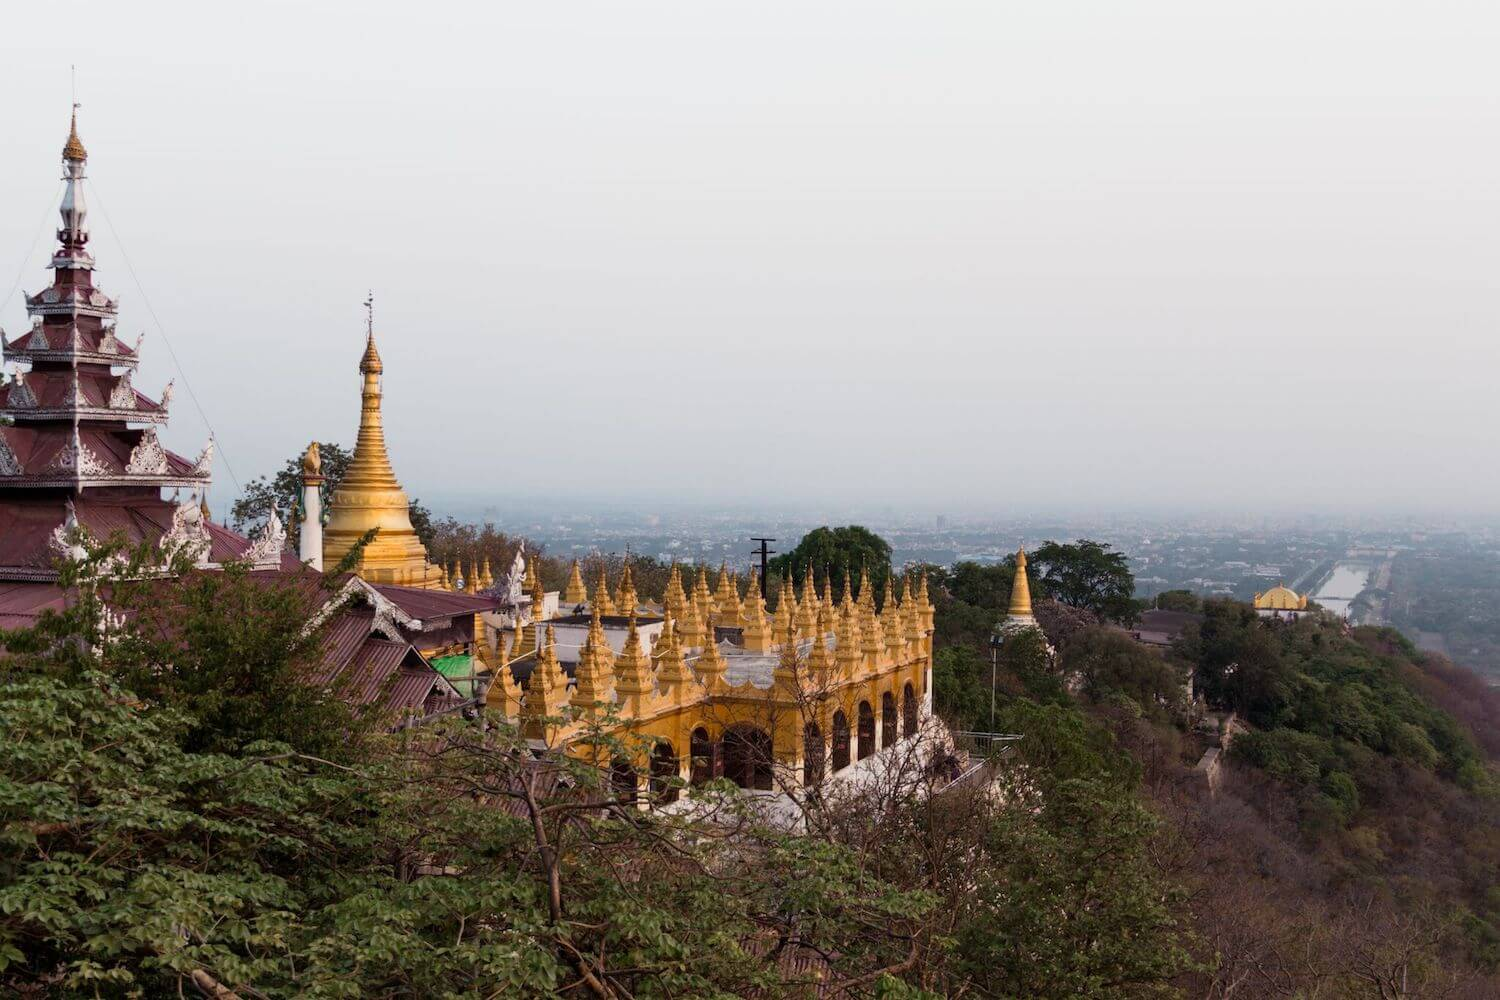 Best Myanmar Itinerary: Photo of the Mandalay Hill and Temple in Mandalay Myanmar, with the golden spires pointing over the trees atop the mountain overlooking Mandalay. Photo taken by Ryan Brown of Lost Boy Memoirs, edited in Lightroom.